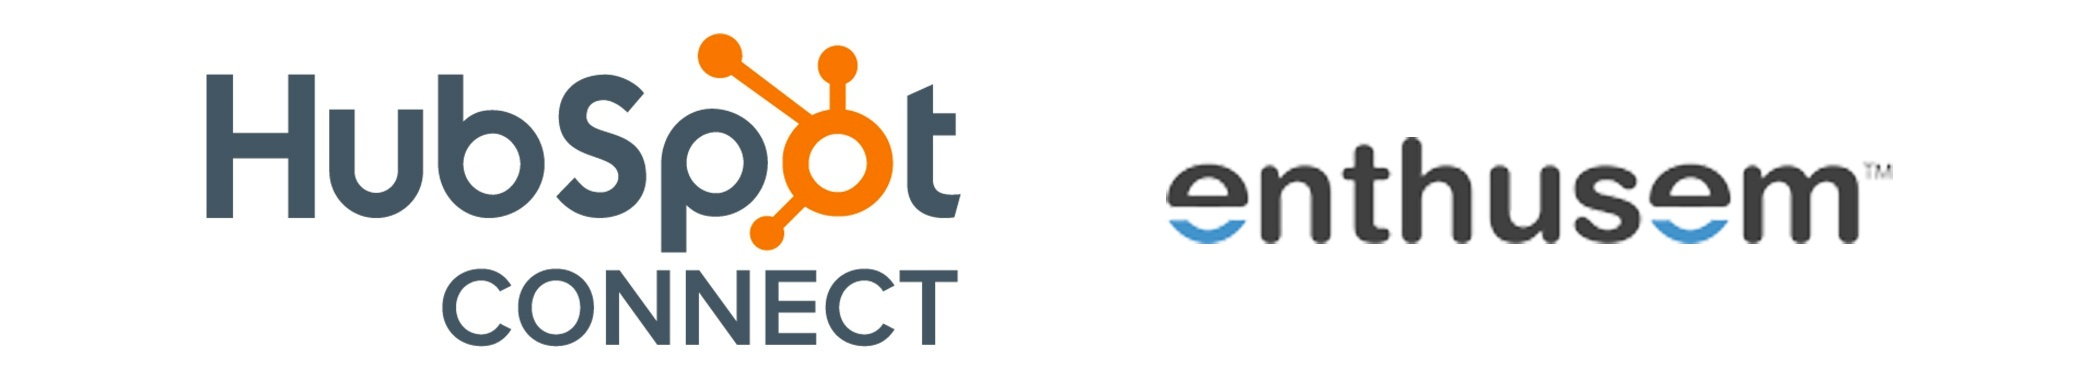 HubSpot-Enthusem Integration